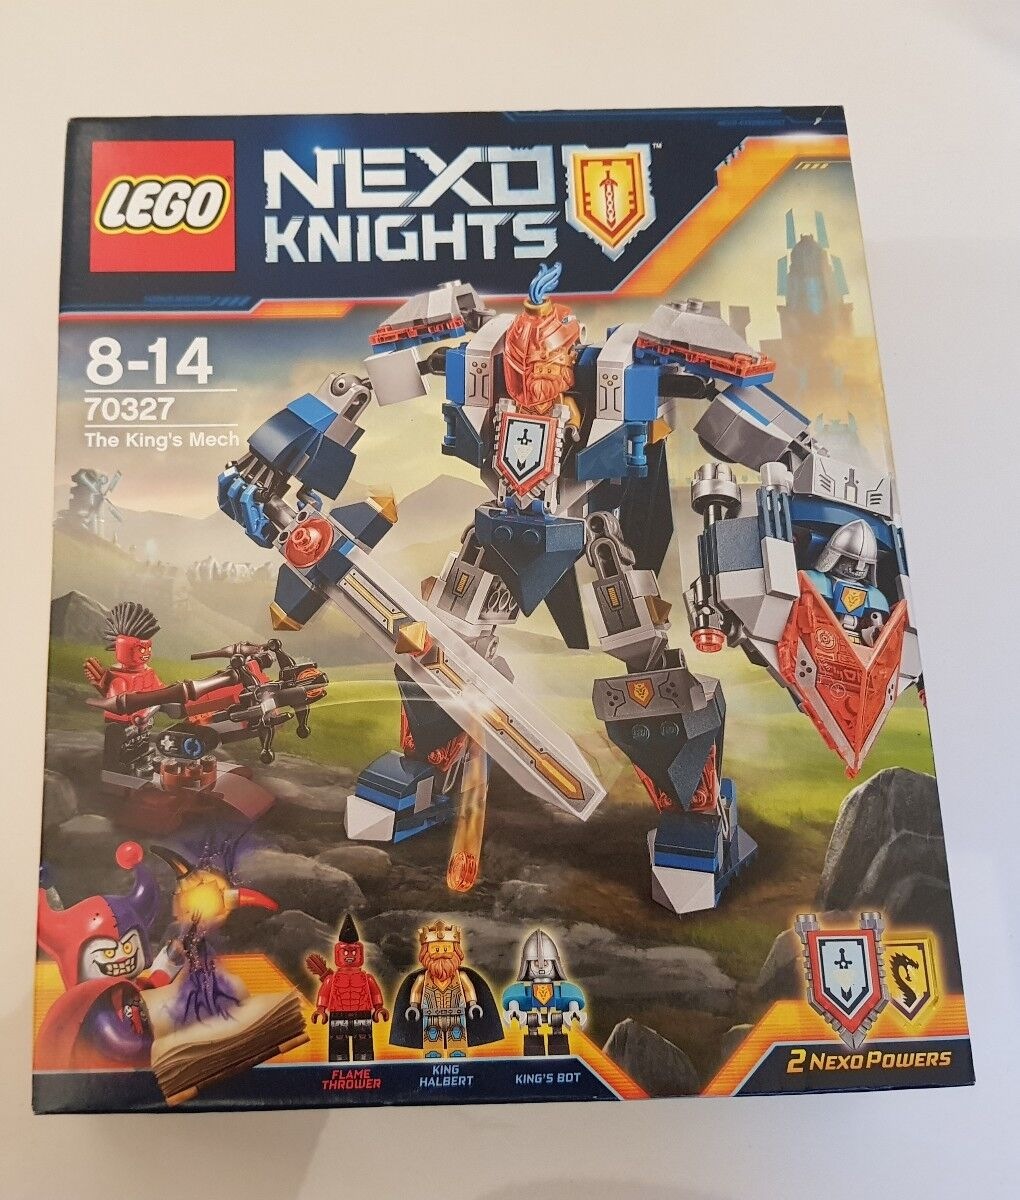 LEGO NEXO KNIGHTS 70327 THE KINGS MECH SET BRAND NEW IN BOX SEALED